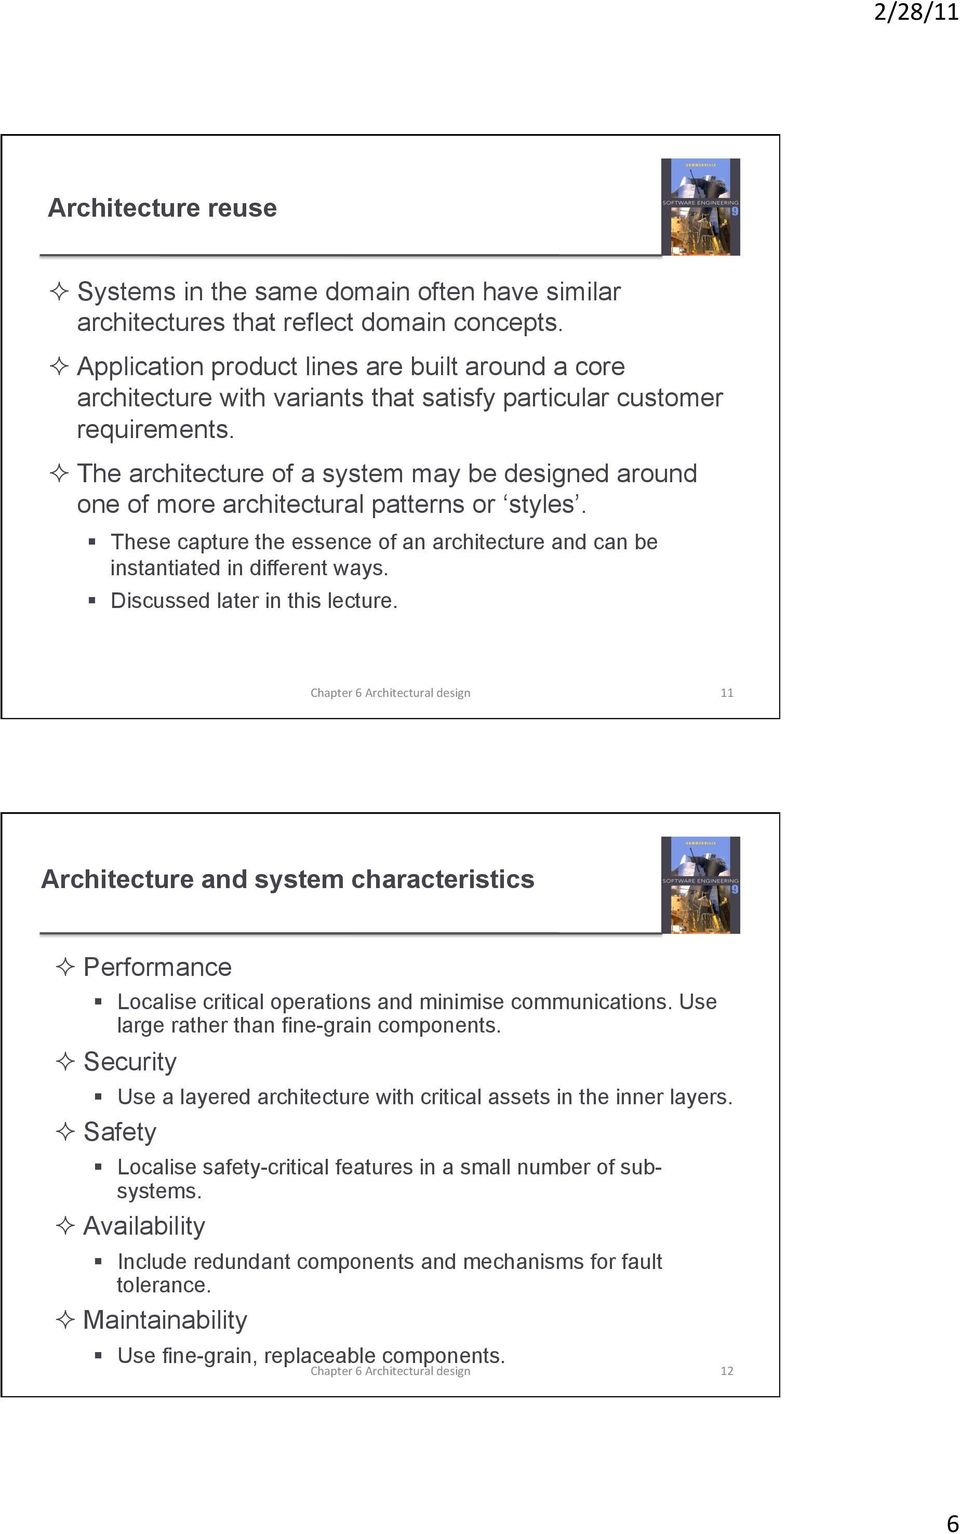 The architecture of a system may be designed around one of more architectural patterns or styles. These capture the essence of an architecture and can be instantiated in different ways.